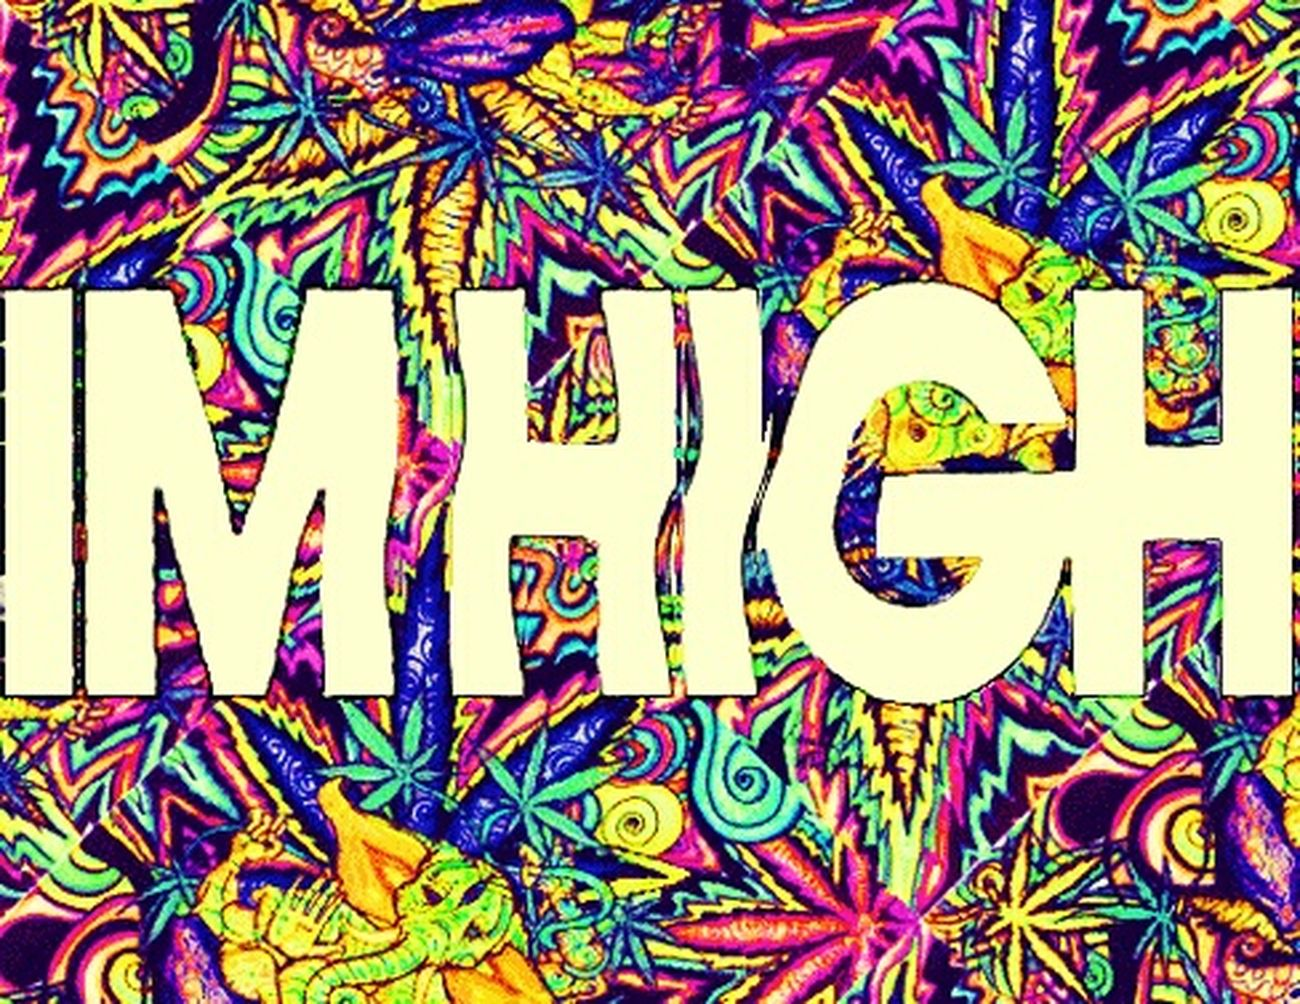 Happy Feelings in the air.... Happy Day ~Chocolate Goddess Wake And Bake Hilarious Stoner Mary Jane Kushnation Relaxing Femme Fatale HighStandards